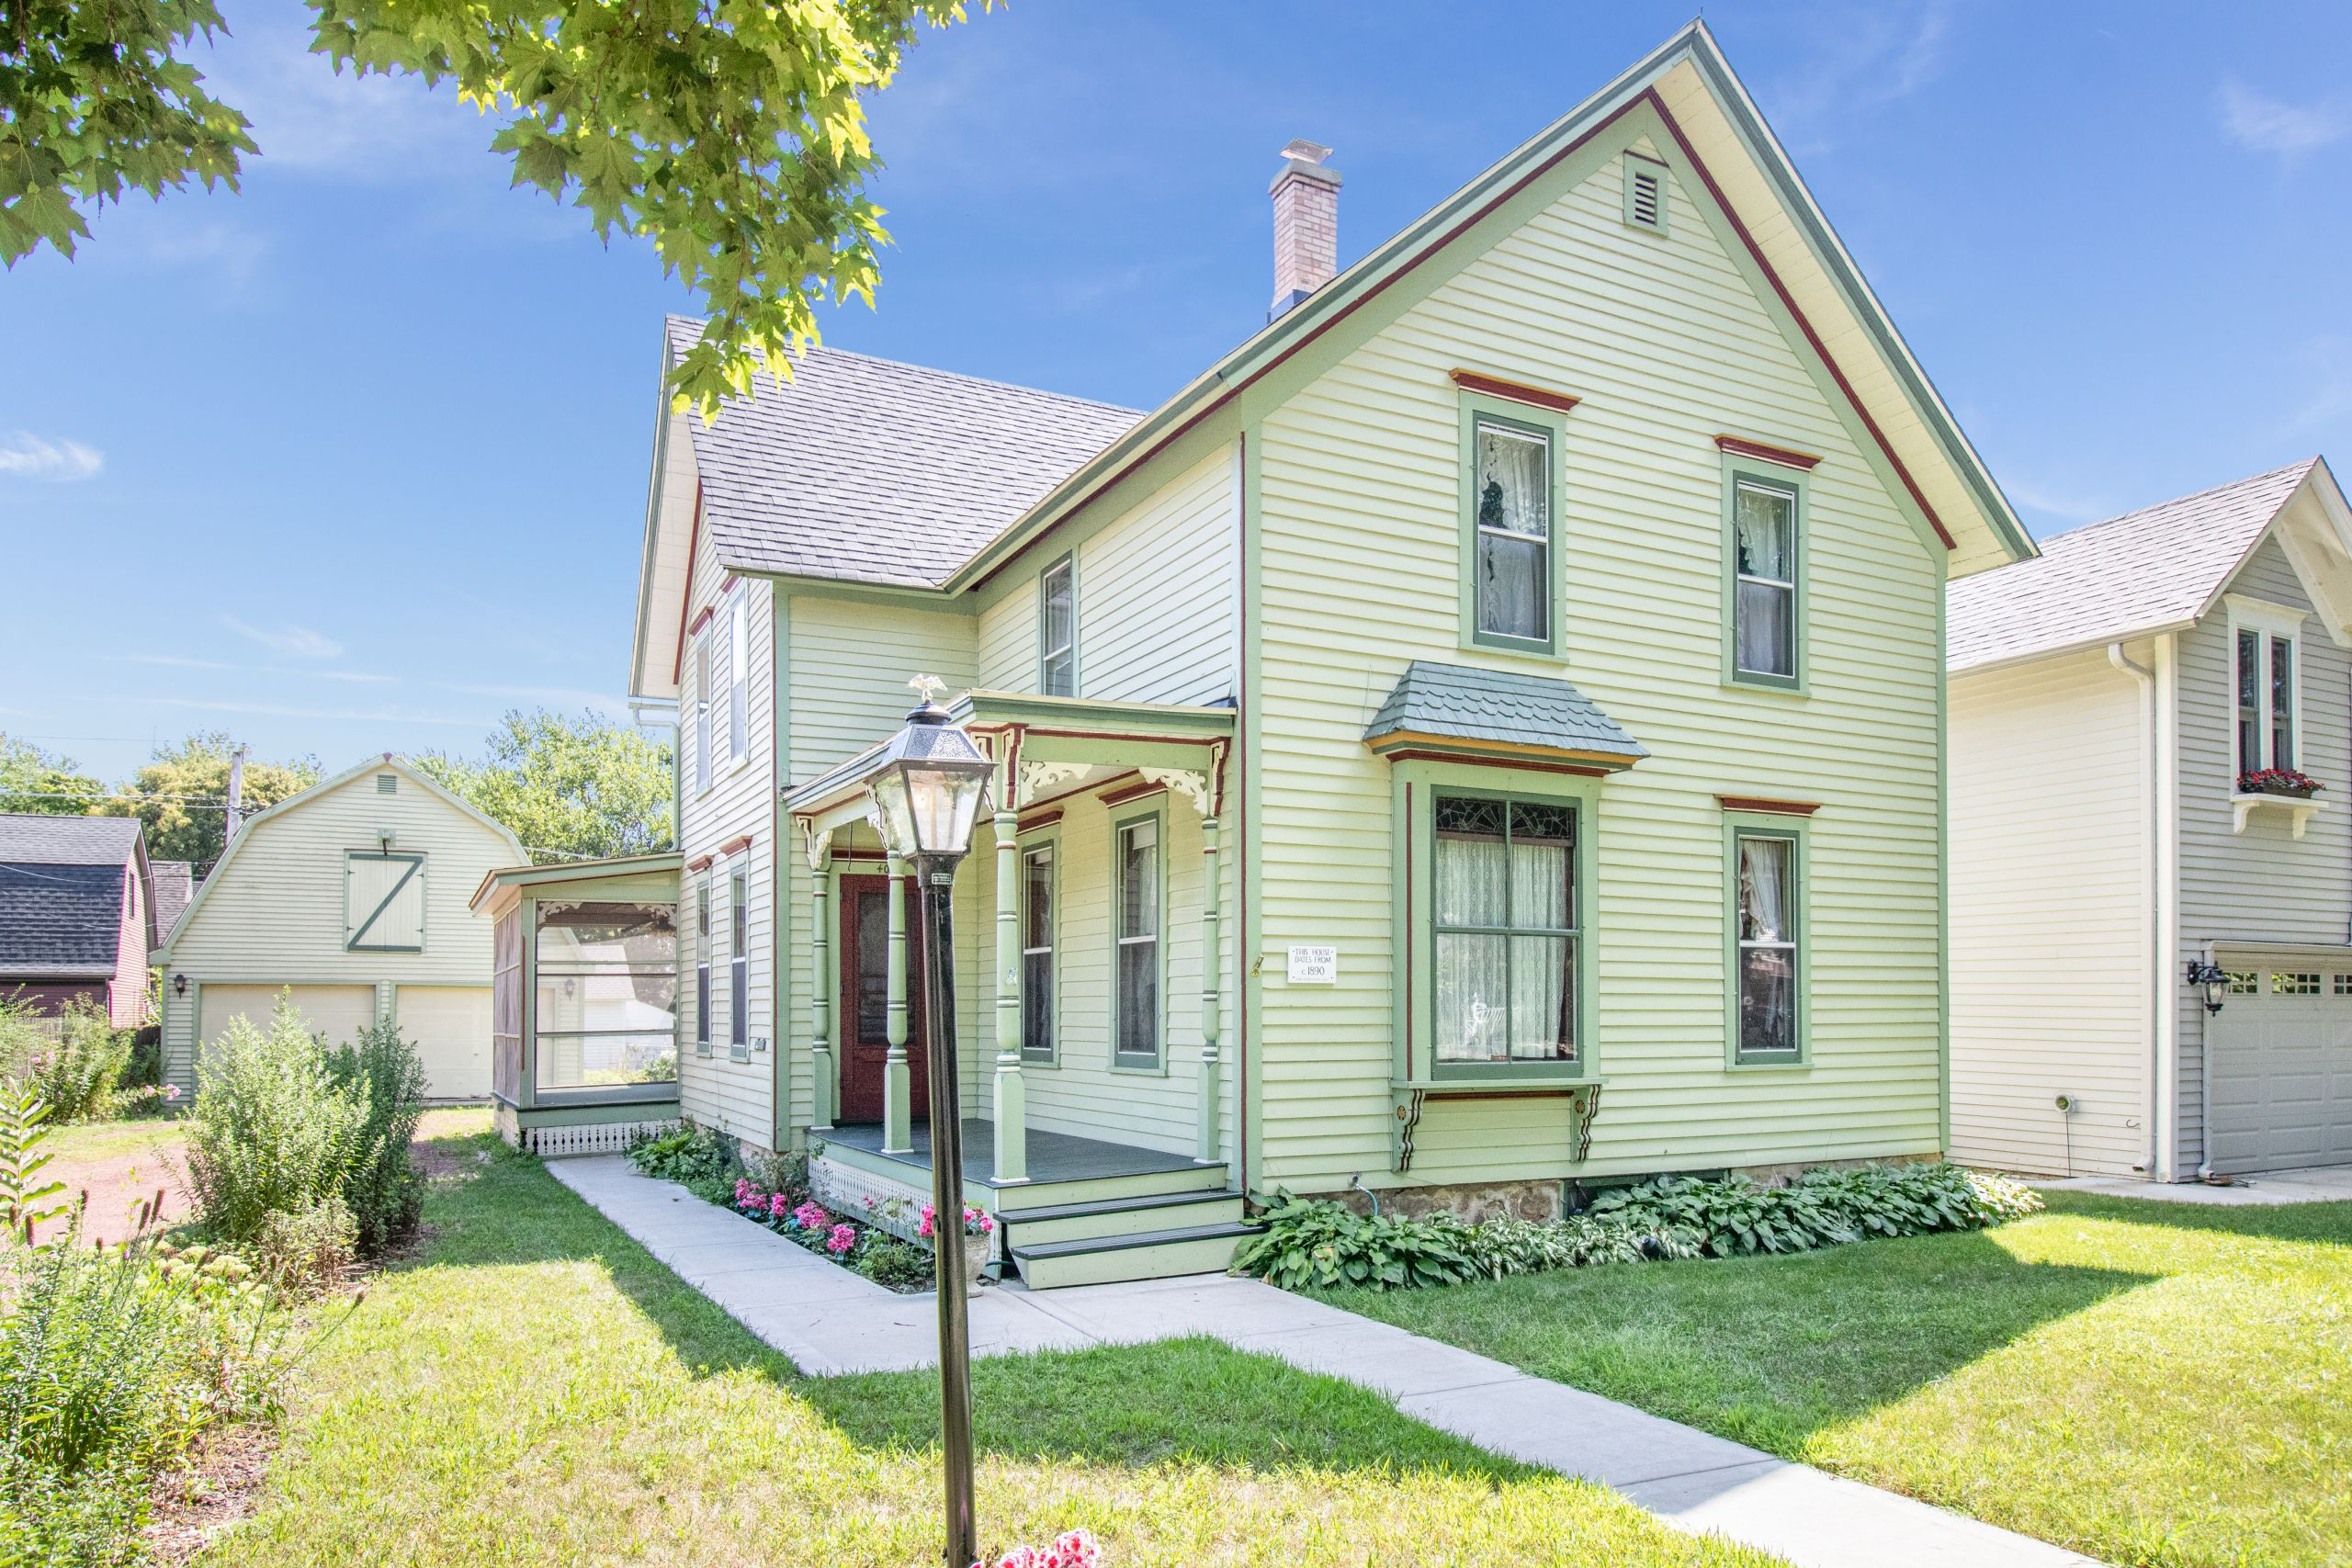 FOR SALE!! 407 Liberty St., West Dundee